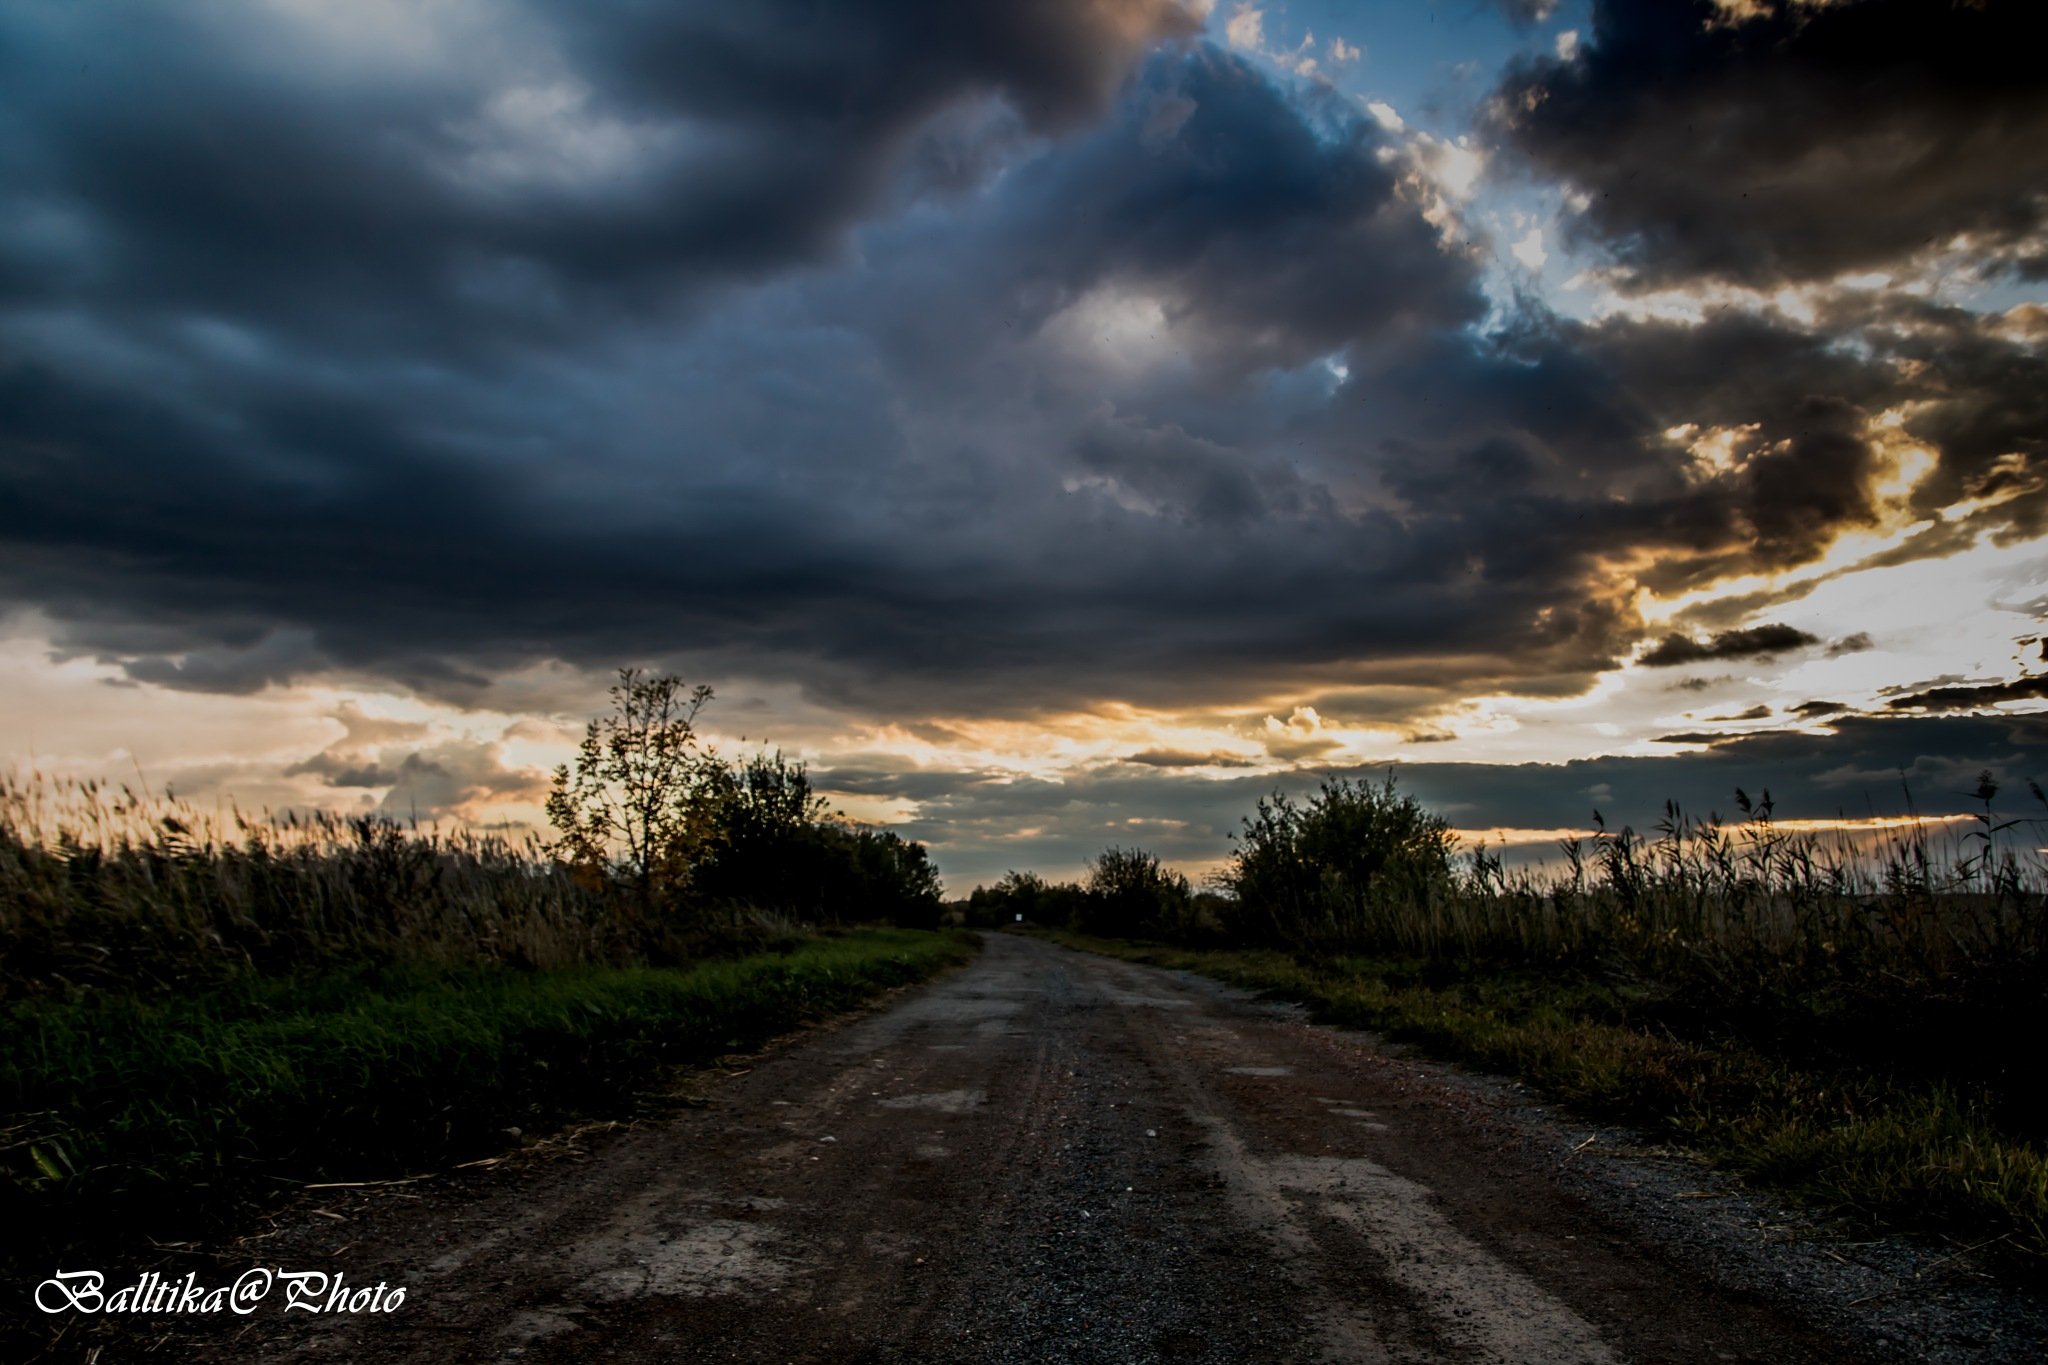 path in unknown direction by Sandrin